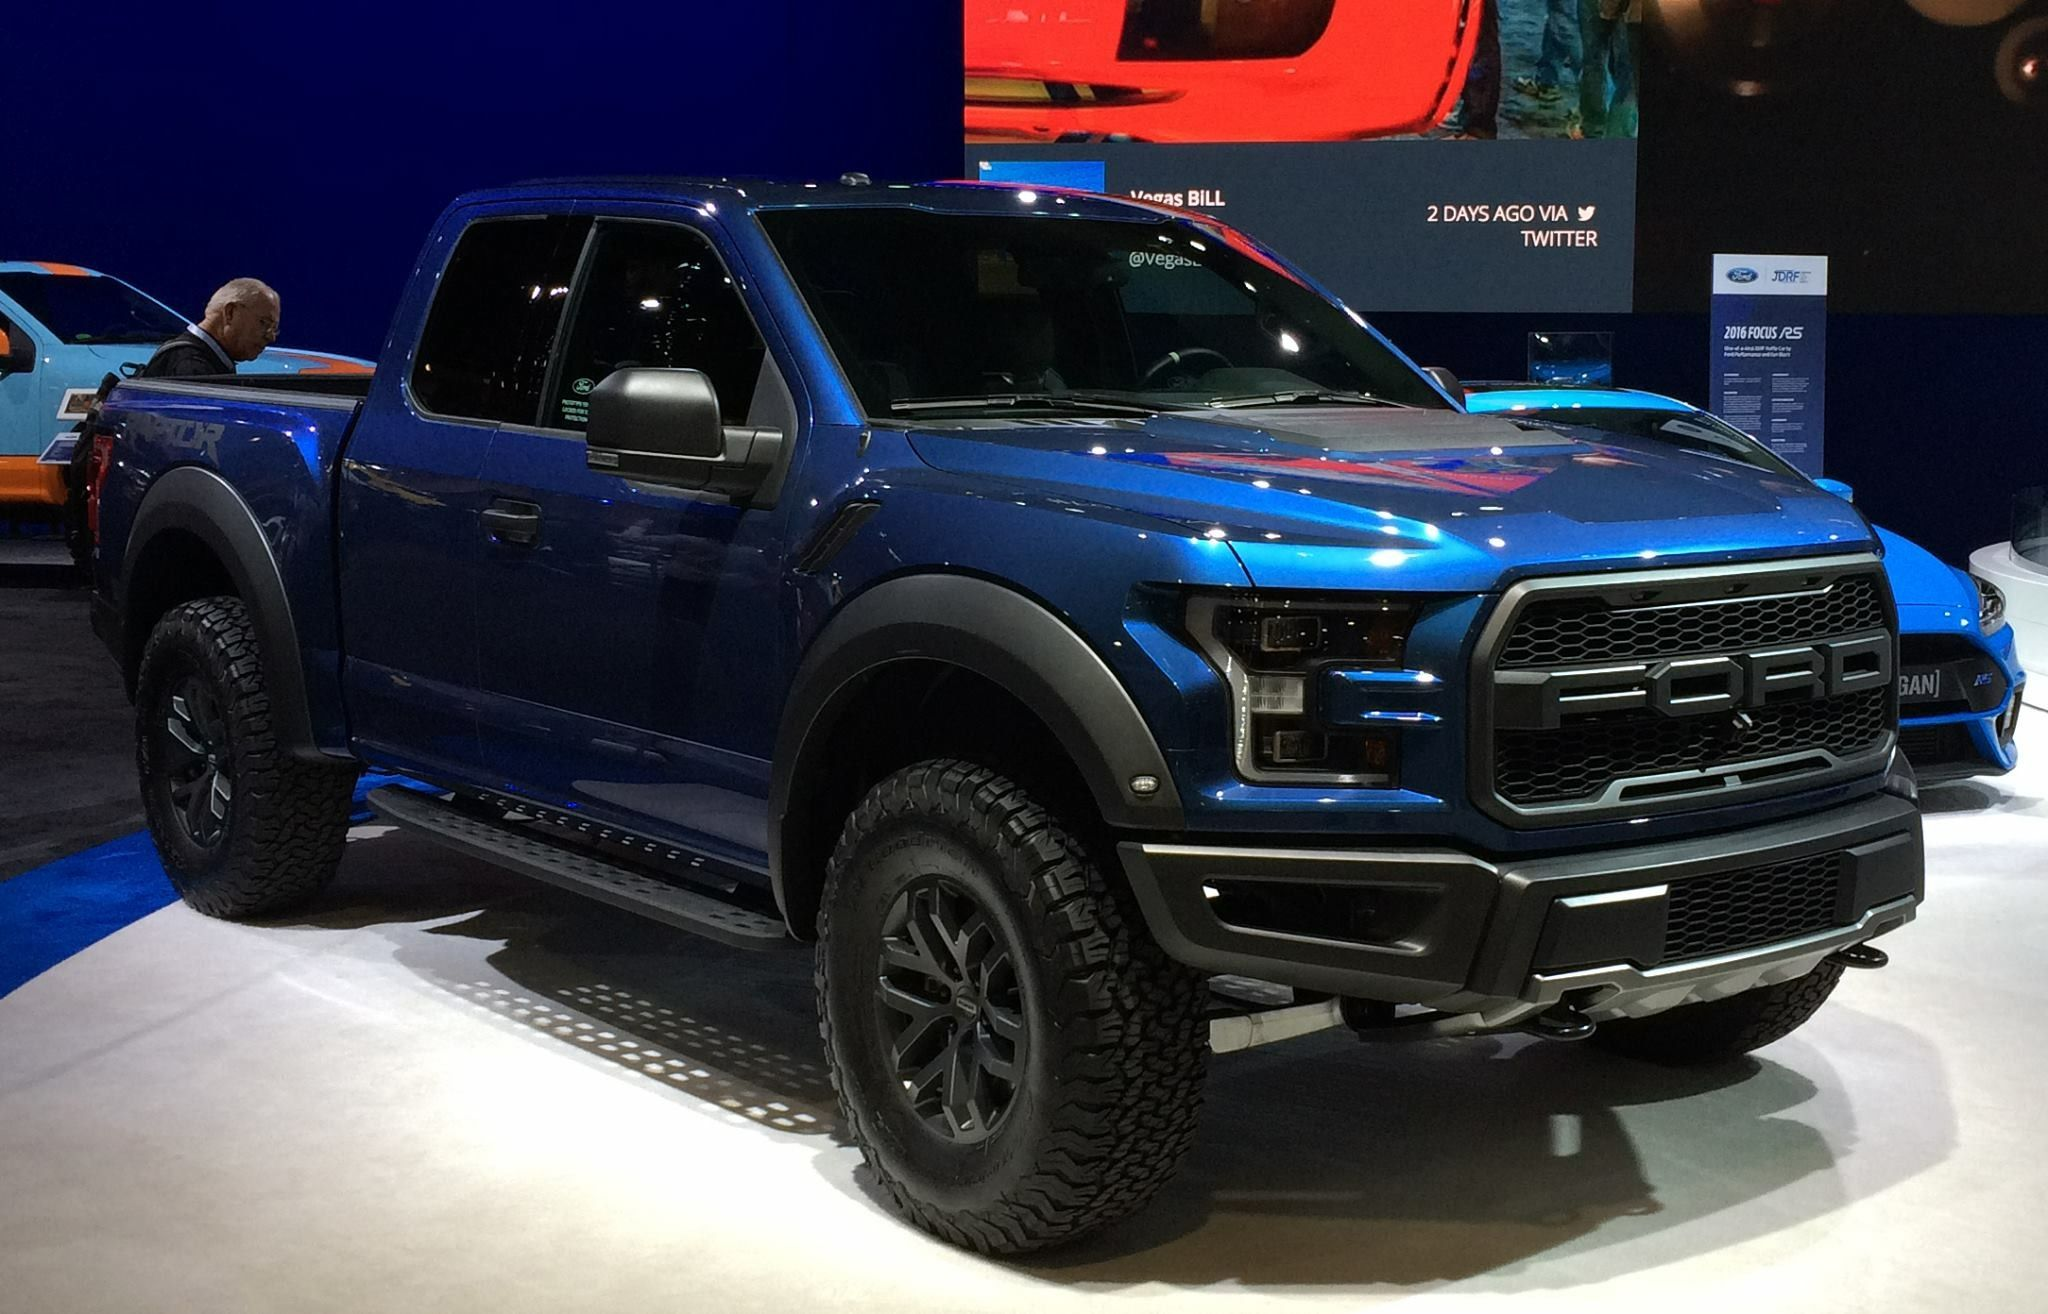 Pin By Keith Hirata On Ford Raptor Ford Raptor Ford 4x4 Ford Trucks